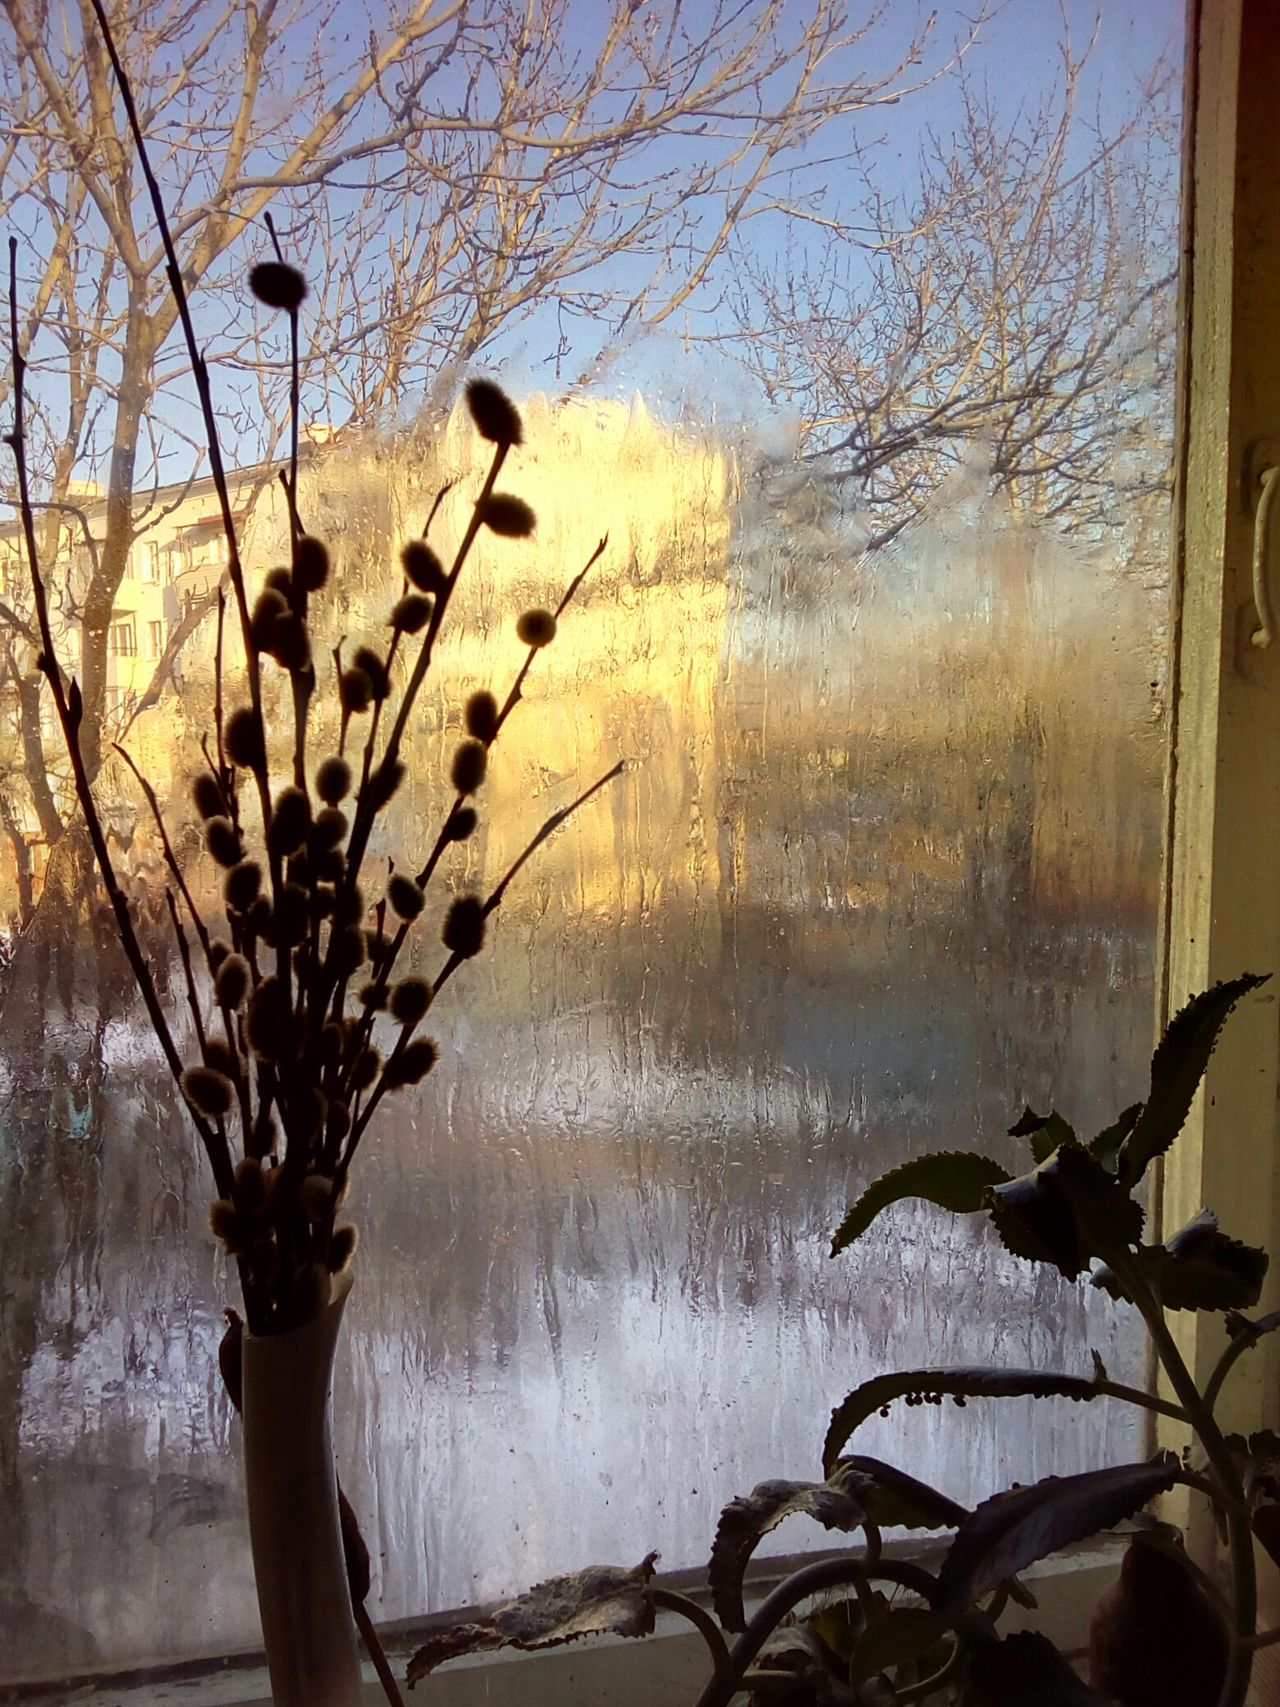 Wet window with the plants Water Window Wet Silhouette Branch Tree Sunset Sunlight Scenics Close-up Sun Plant Plants Sky Kalanchoe No People Winter